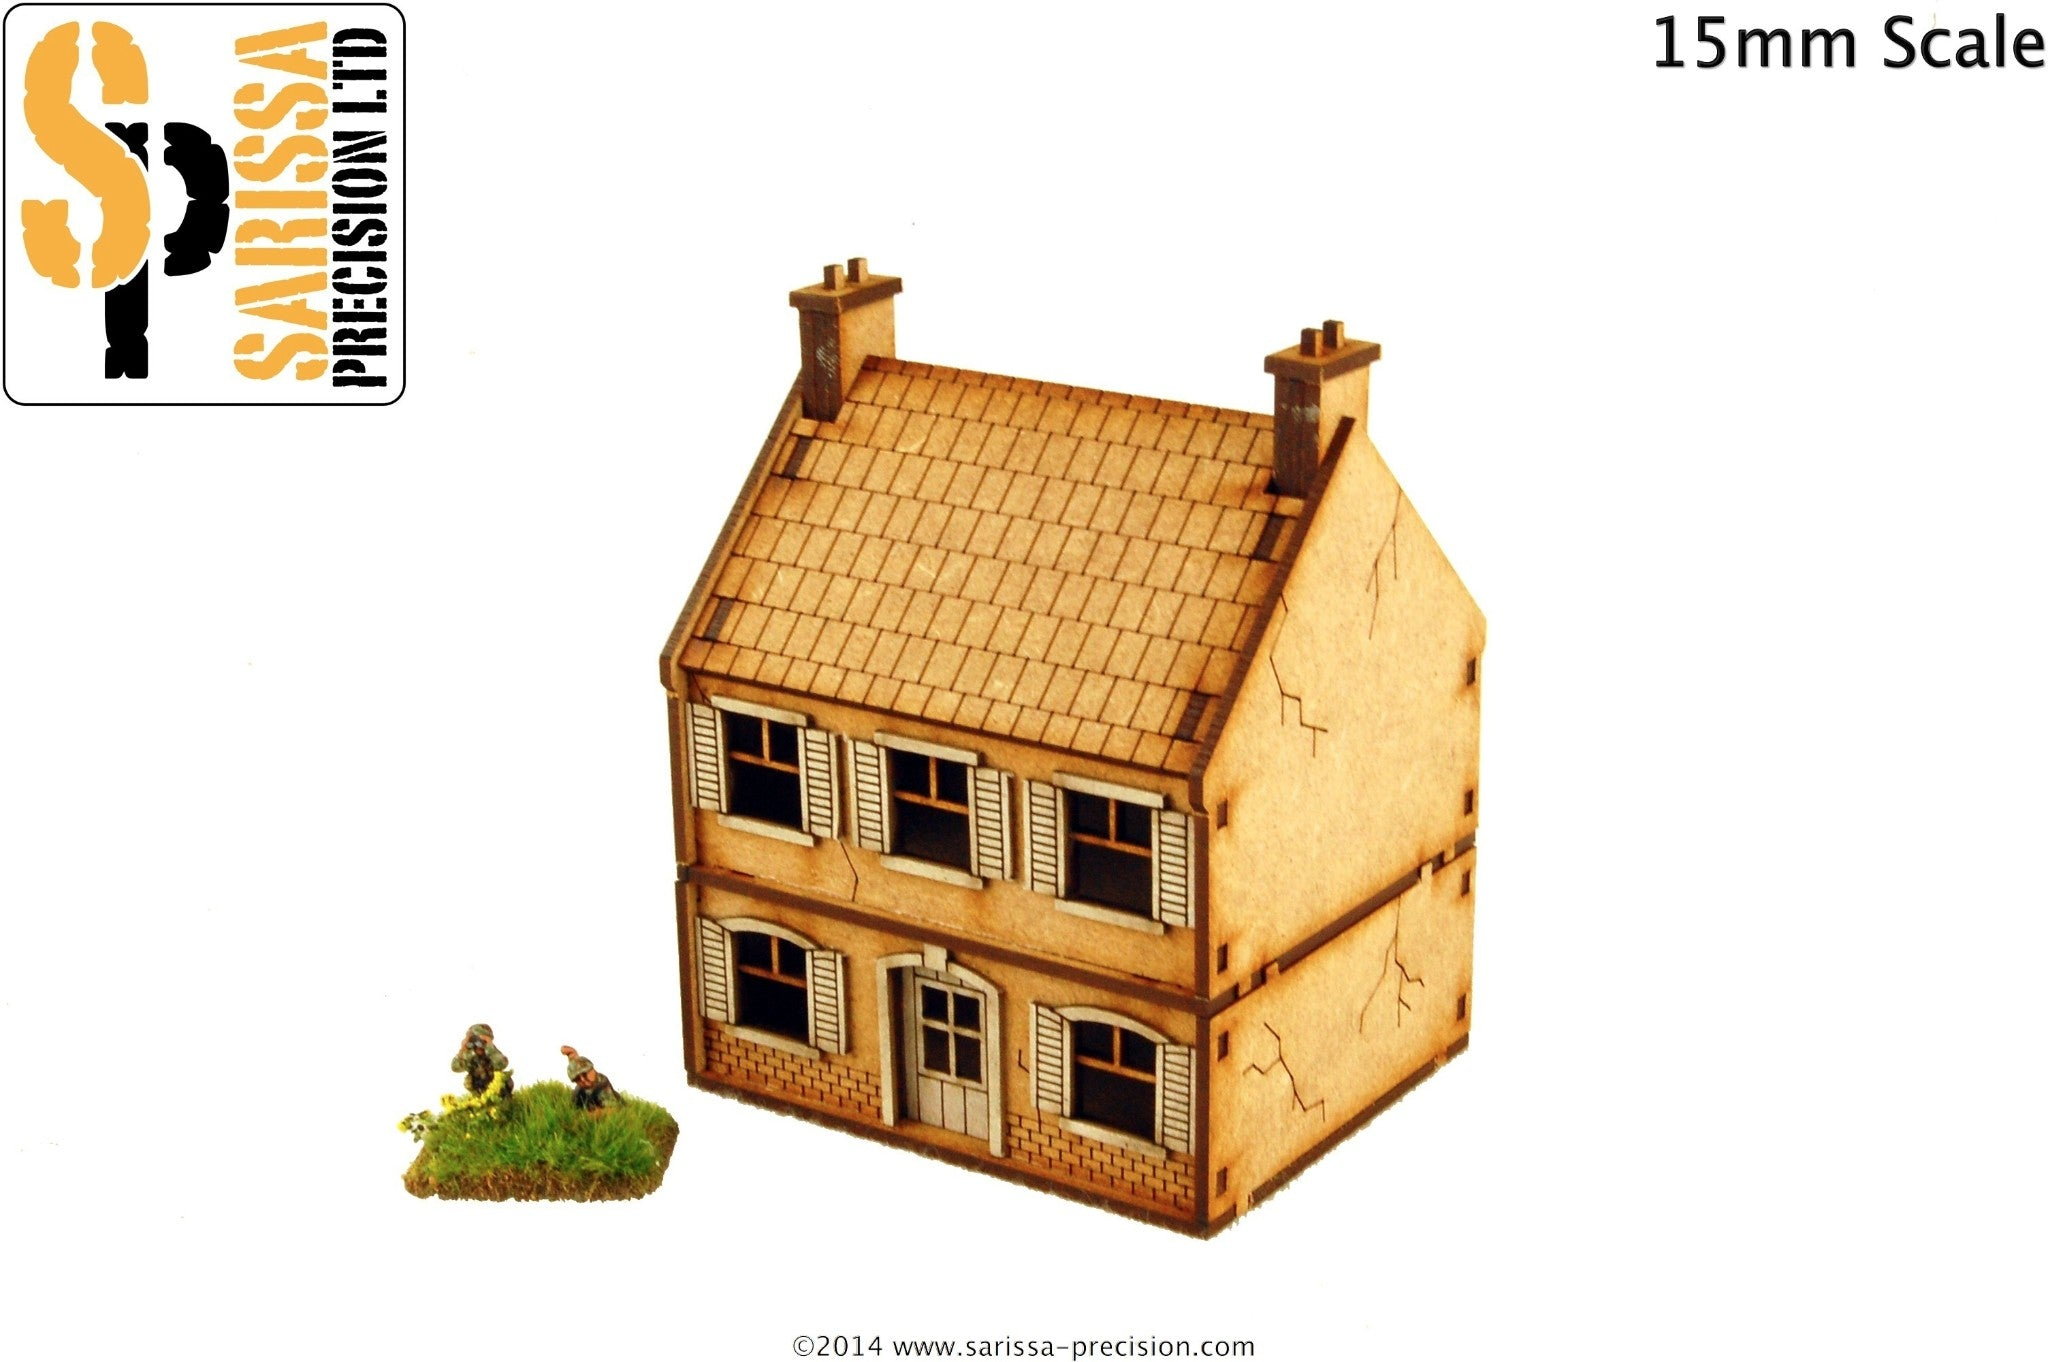 Farmhouse - 15mm